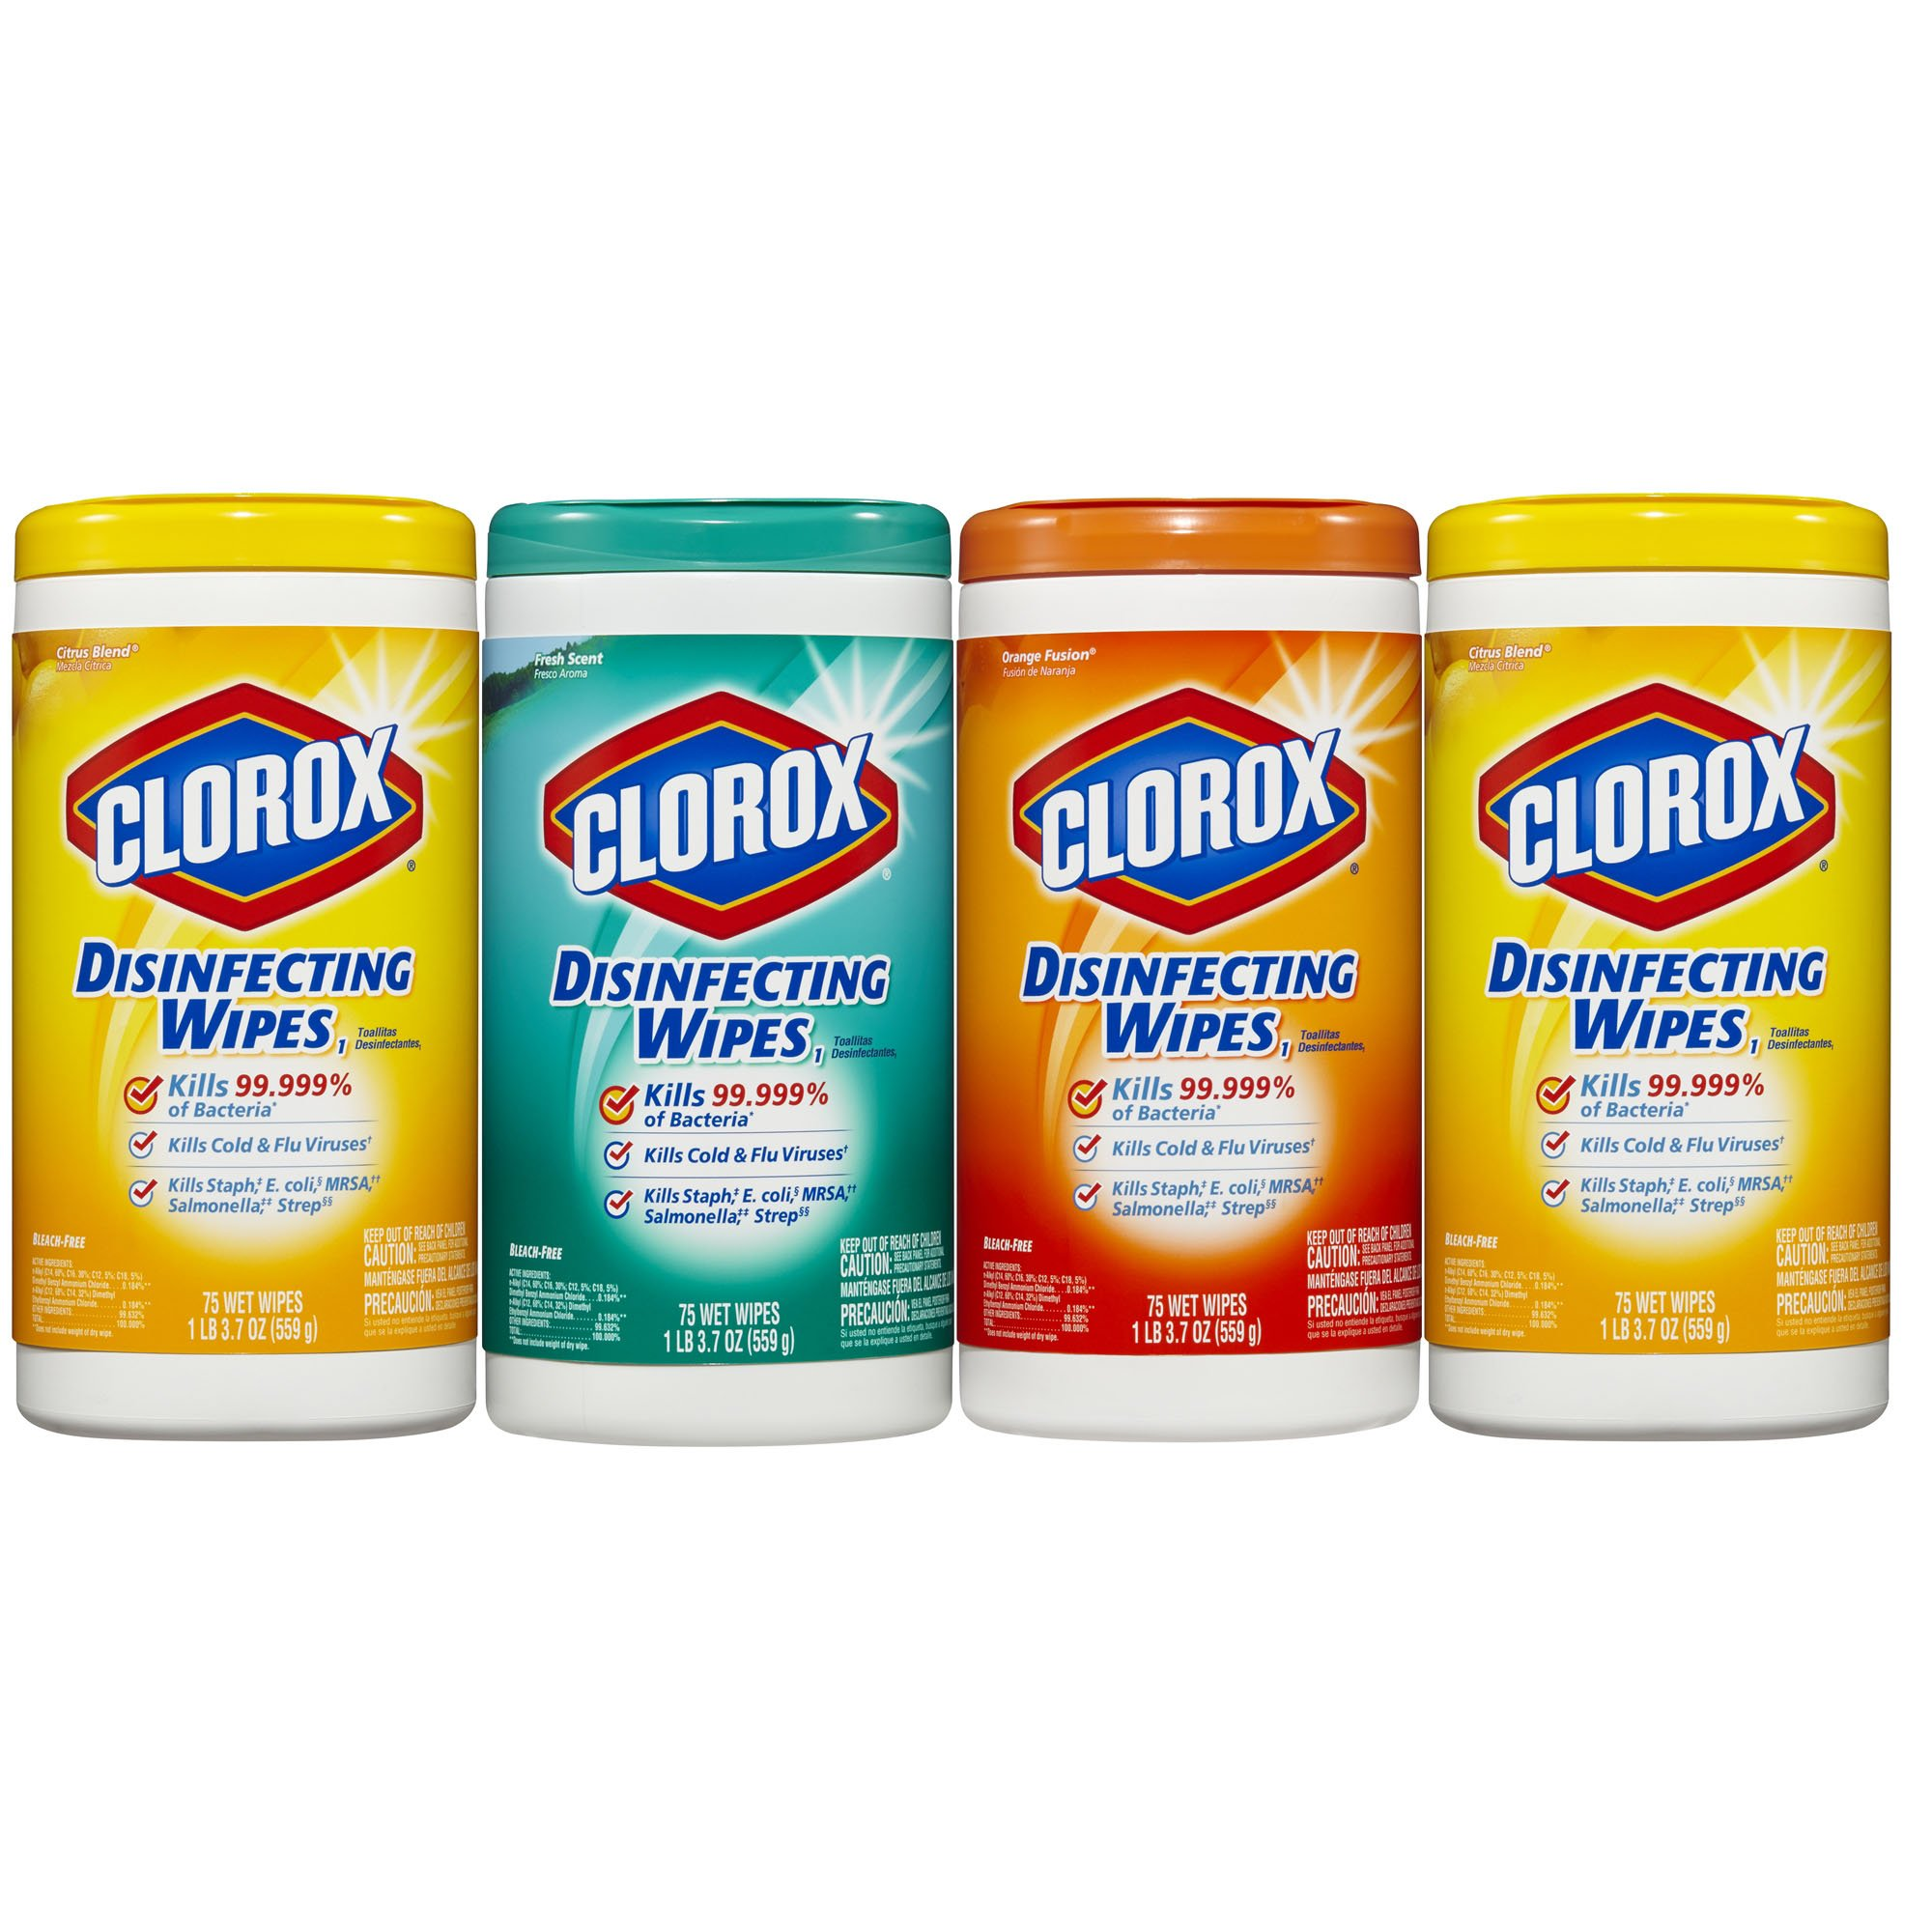 Clorox Disinfecting Cleaning Wipes Value Pack, Crisp Lemon Scent, Fresh Scent and Orange Fusion Scent, 75 Wipes each, 4 Count